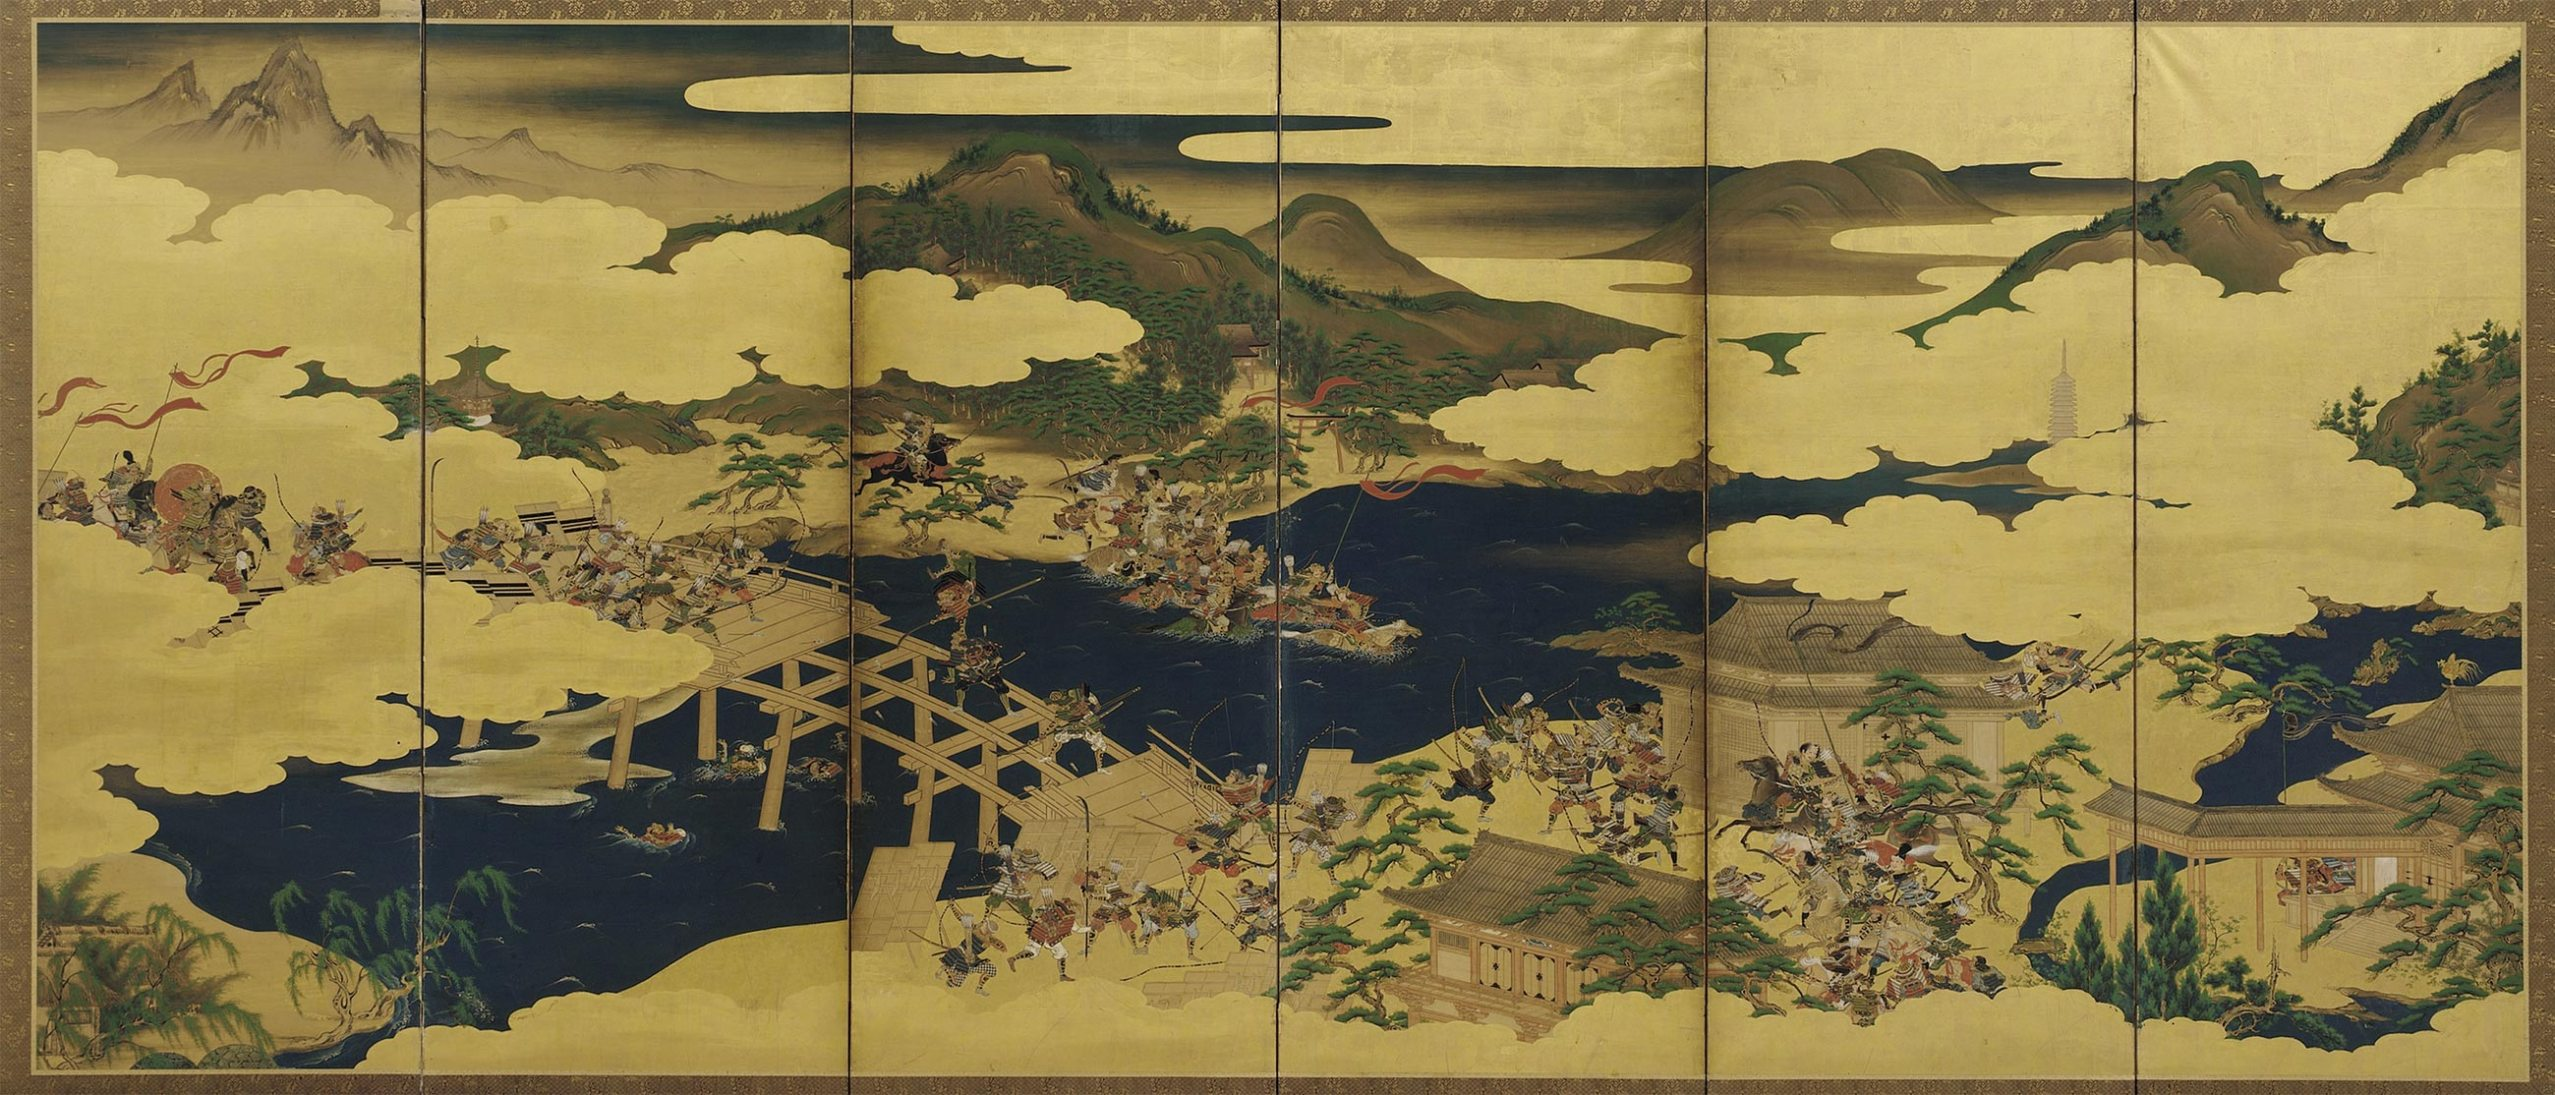 A detail from a screen depicting a battle scene, predominately gold, green and blues.